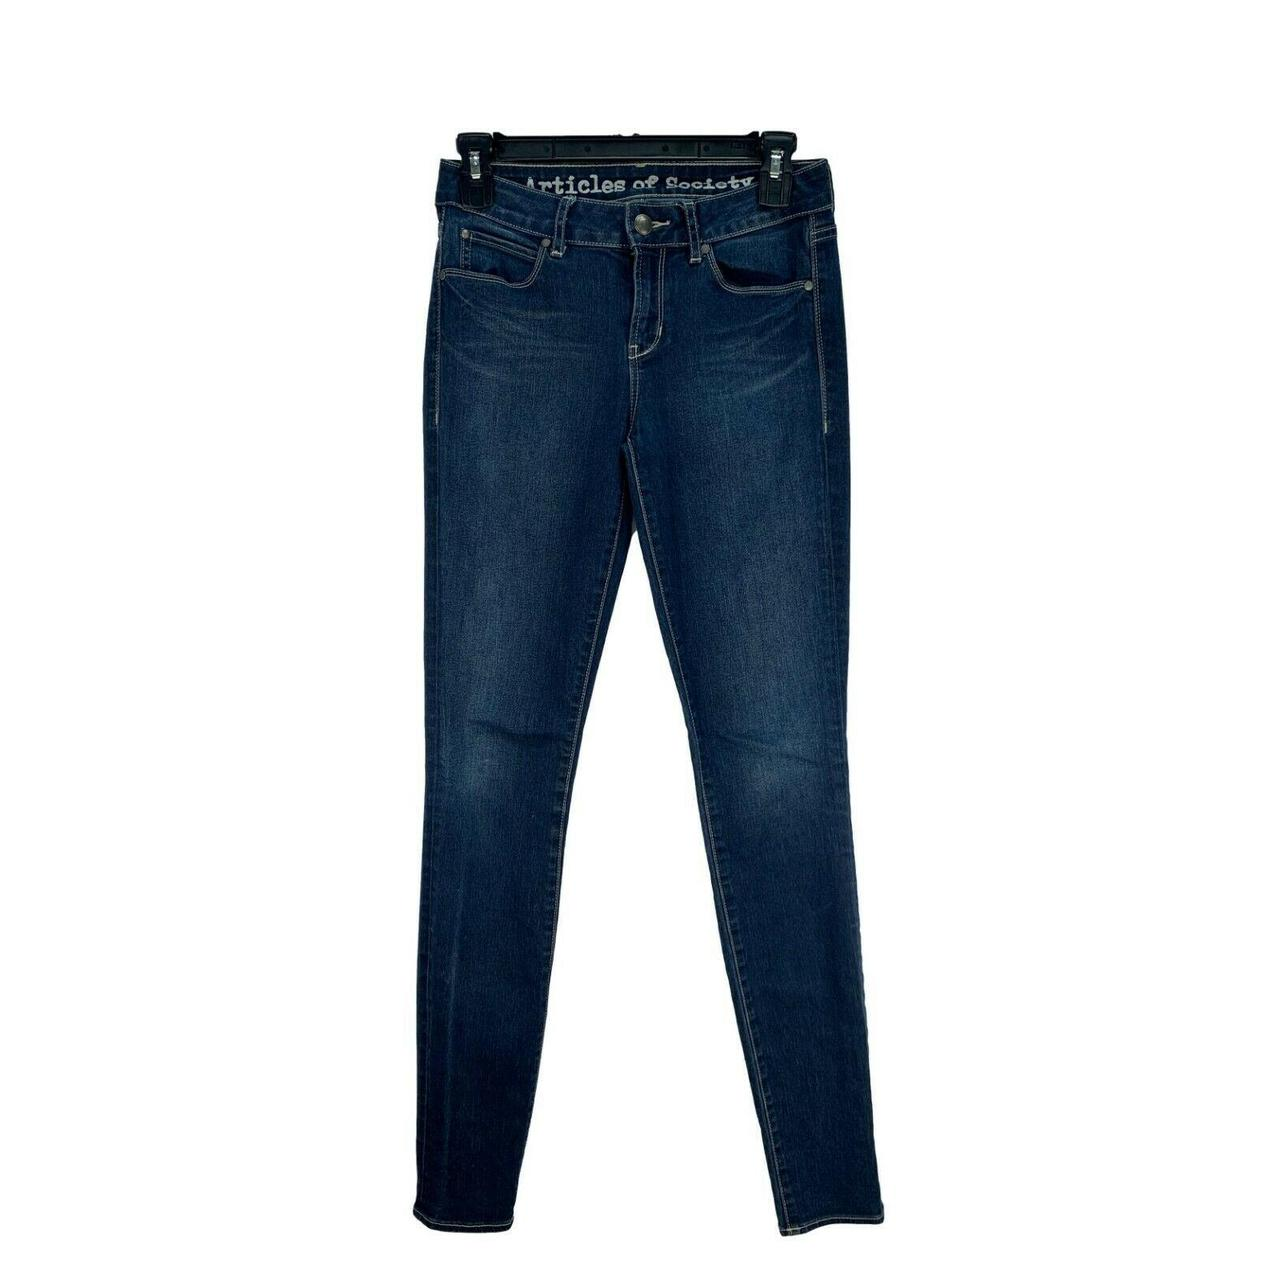 Product Image 1 - Articles of Society Womens Blue